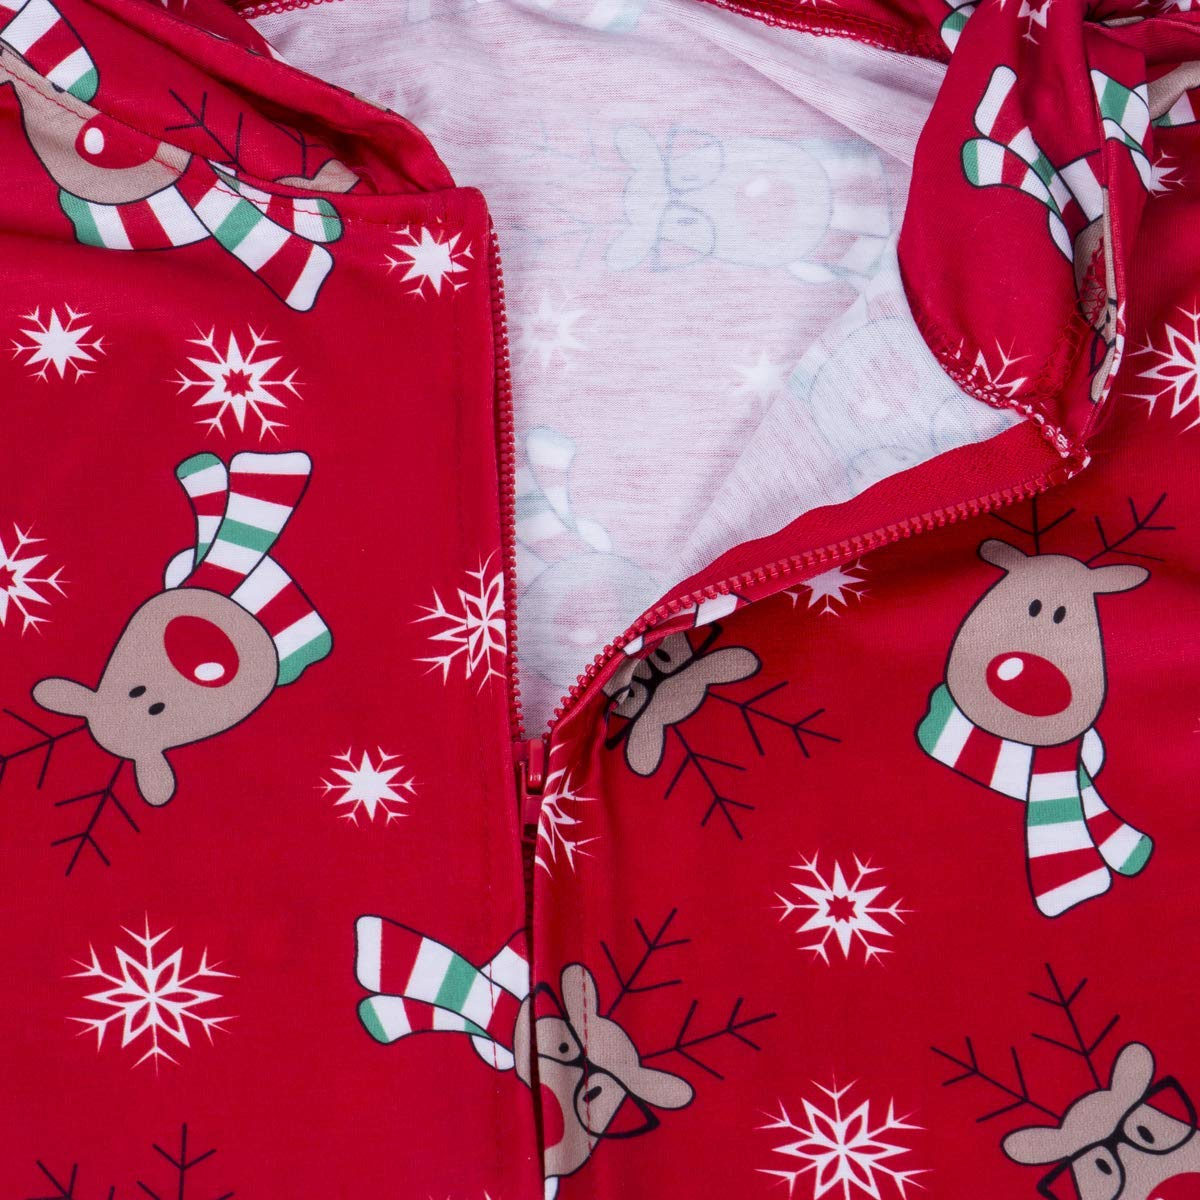 Family Matching ChristmasHoodie JumpsuitPajamasSetsLong Sleeve Sweatshirt